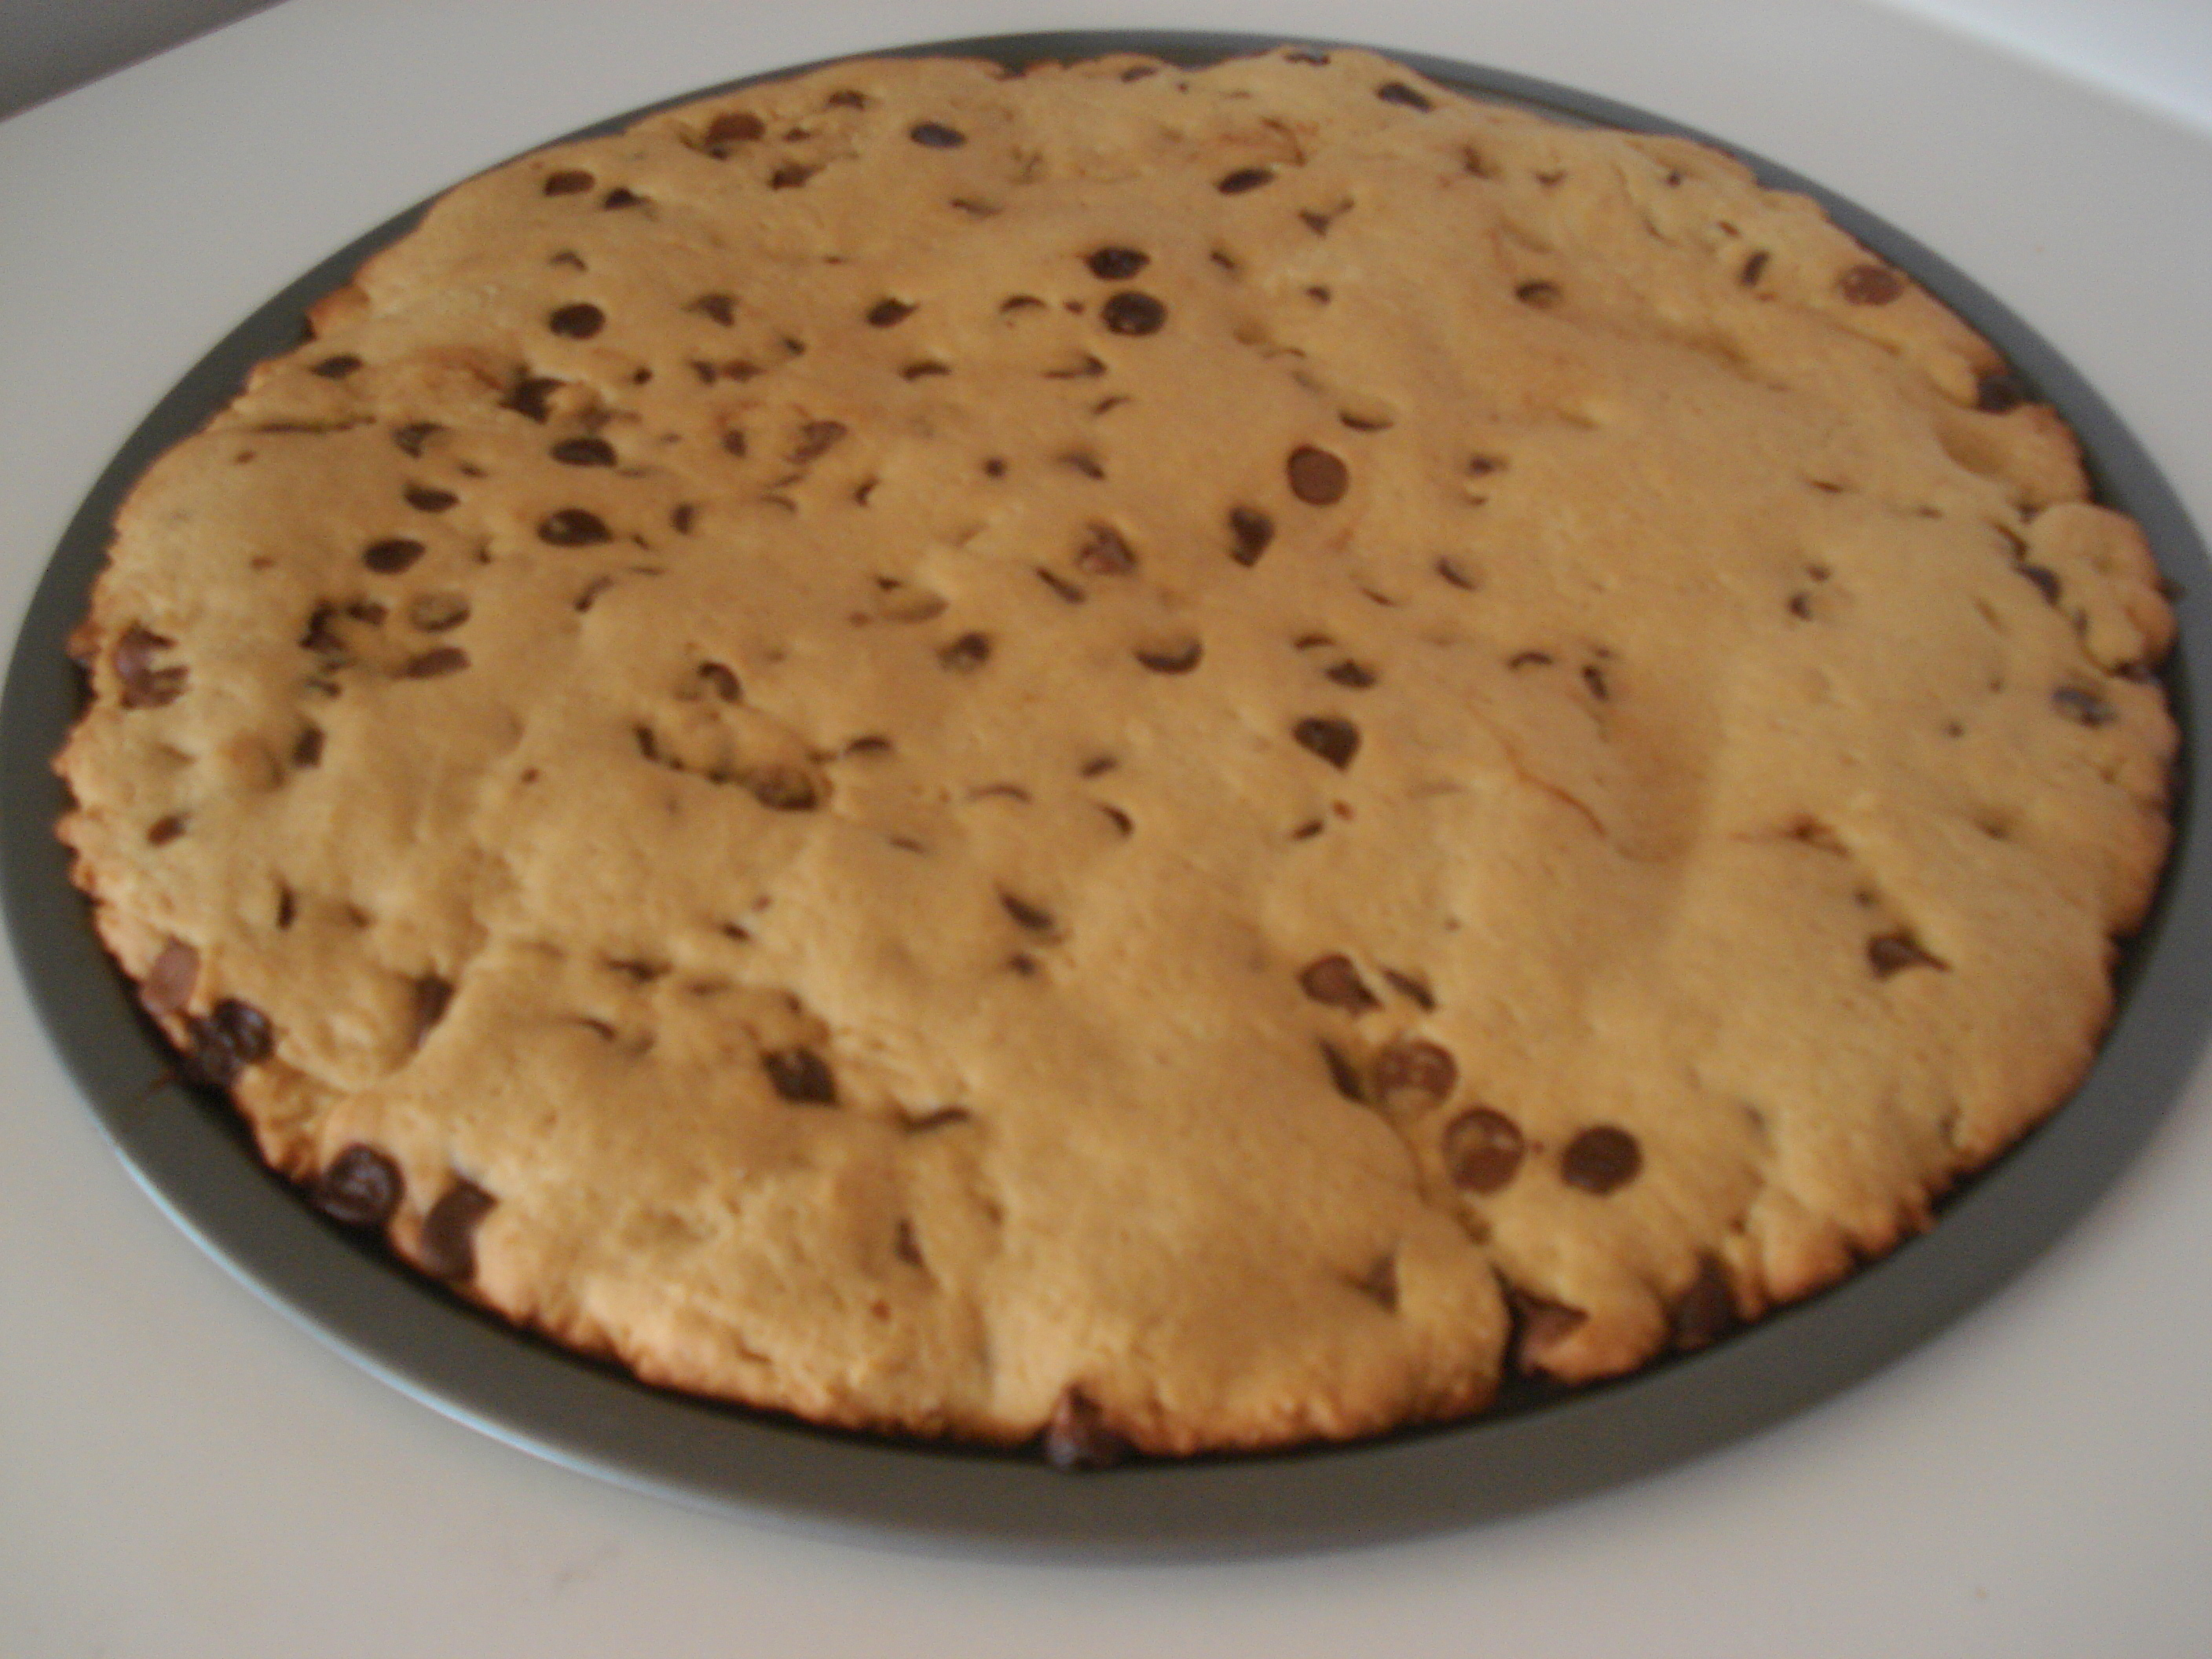 Peanut-Free, Nut-Free Chocolate Chip Cookie Cake | The Food ...